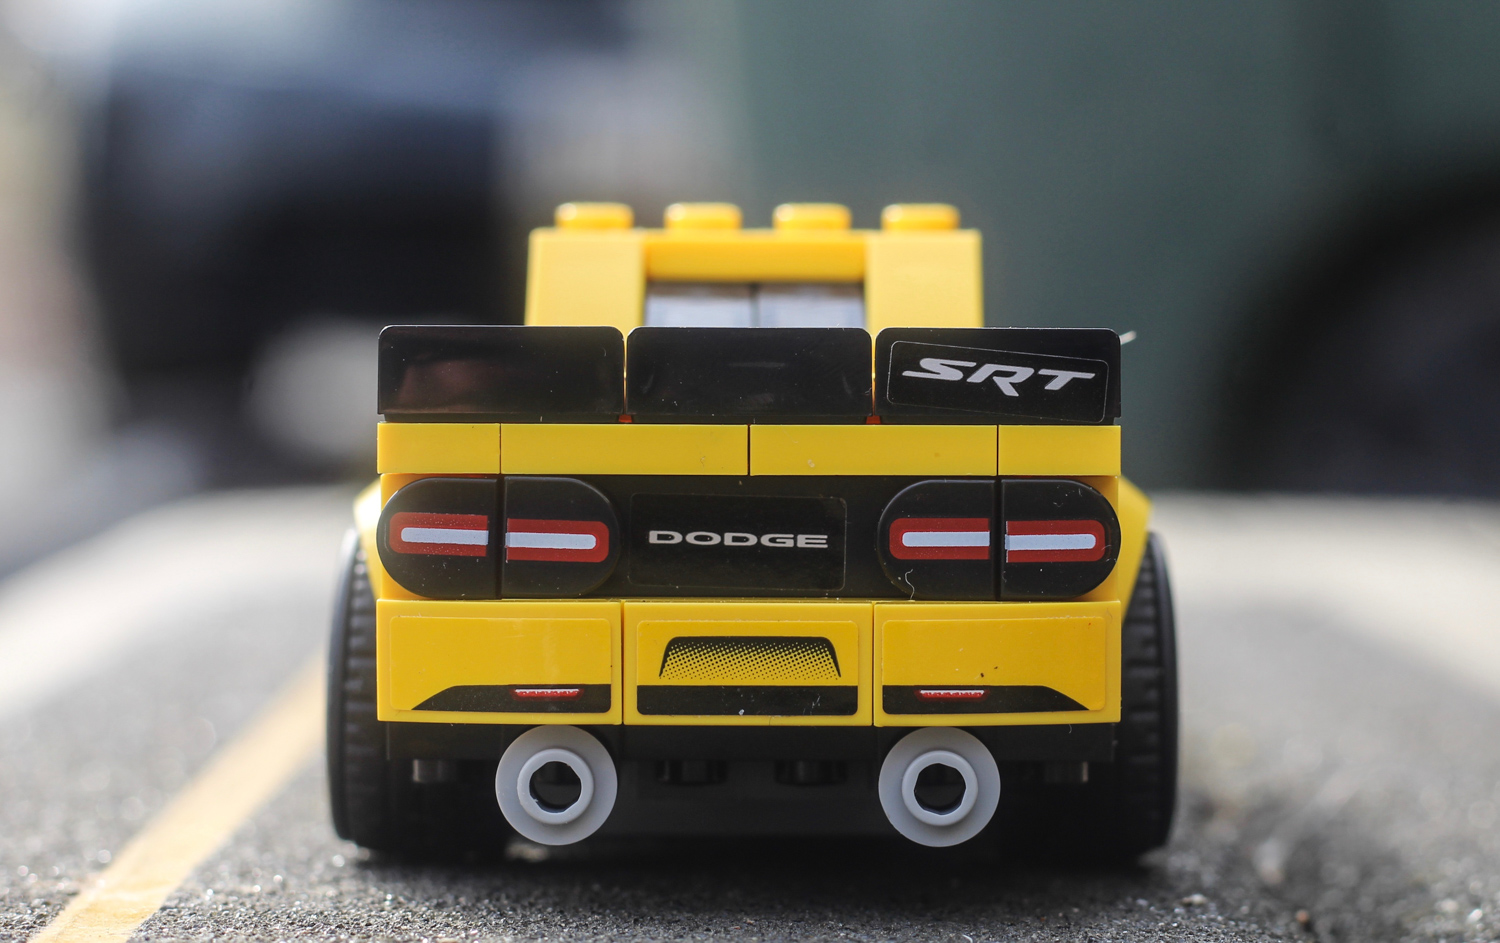 lego dodge demon rear